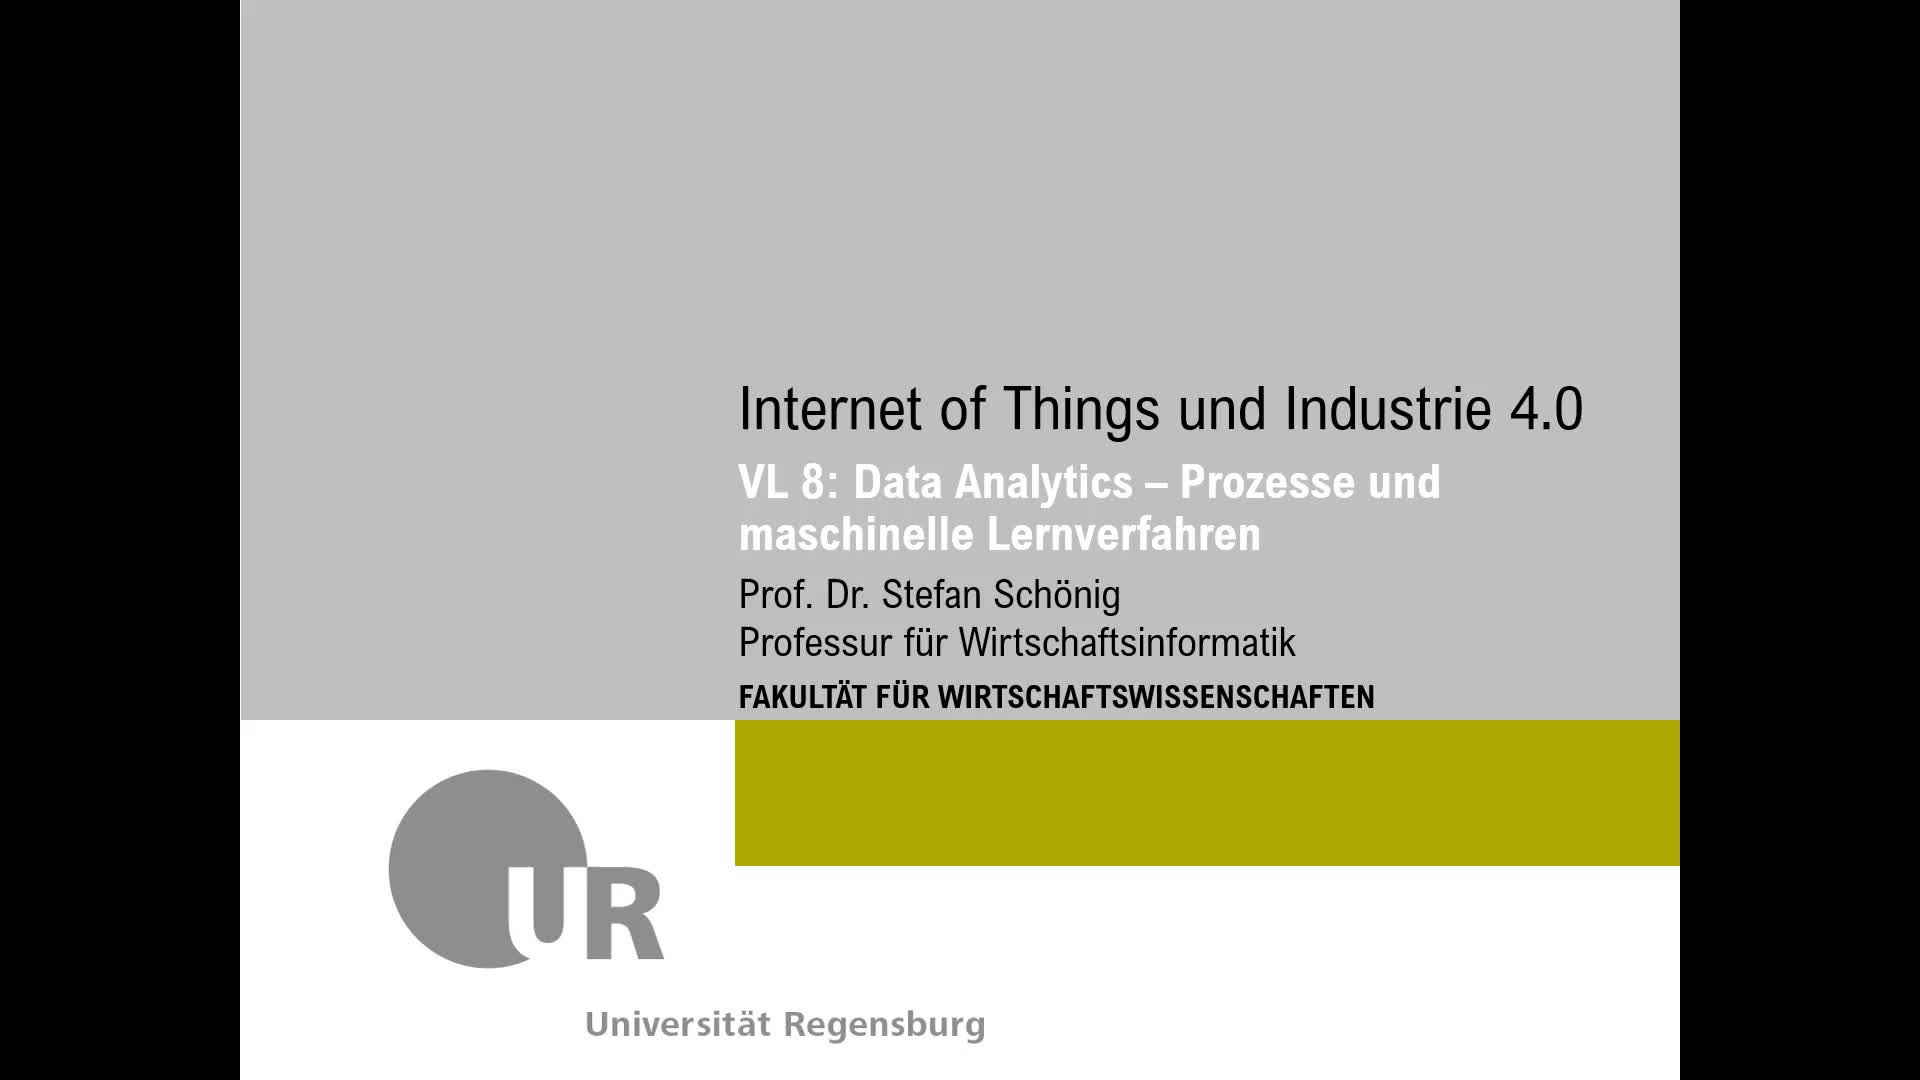 SS 2020 - Internet of Things und Industrie 4.0 - Kapitel 8 (Data Analytics - Maschinelle Lernverfahren)